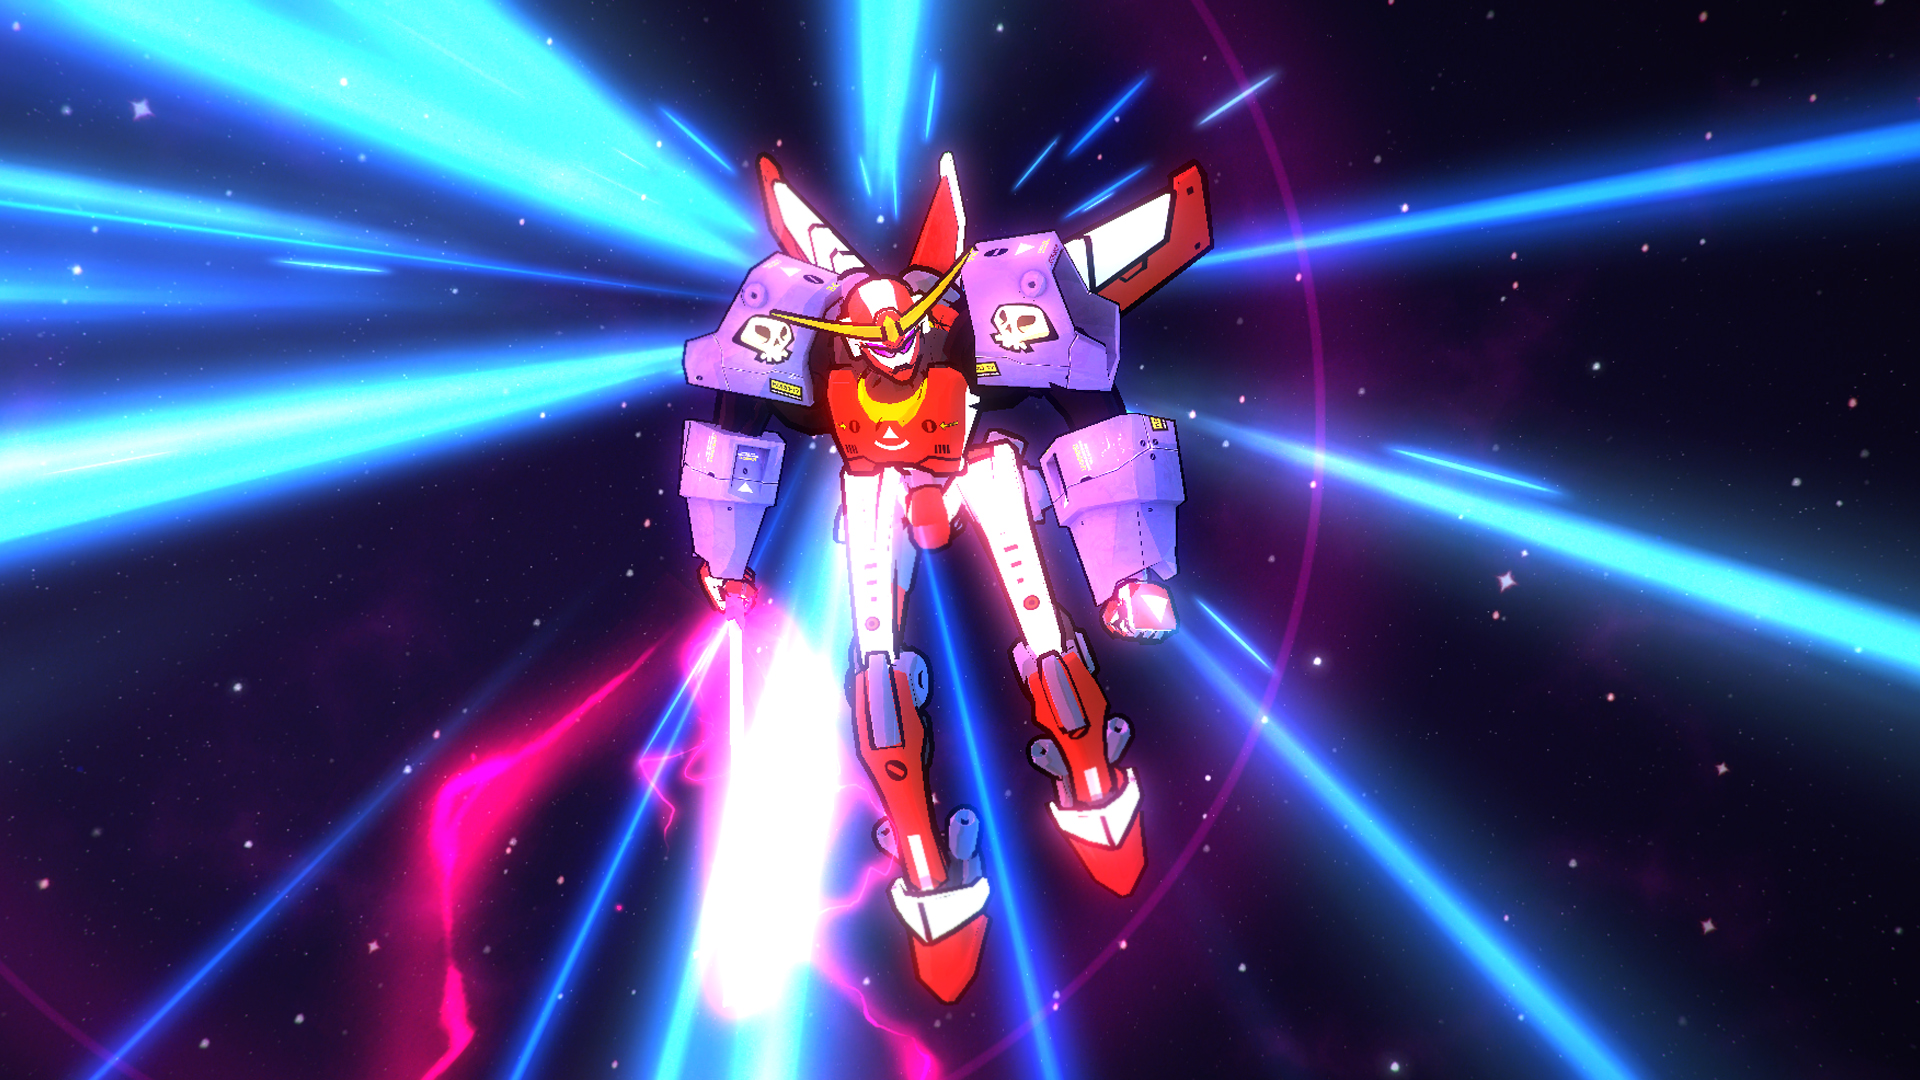 Galak z truly goes full macross with its transformable for Cubi spaceo